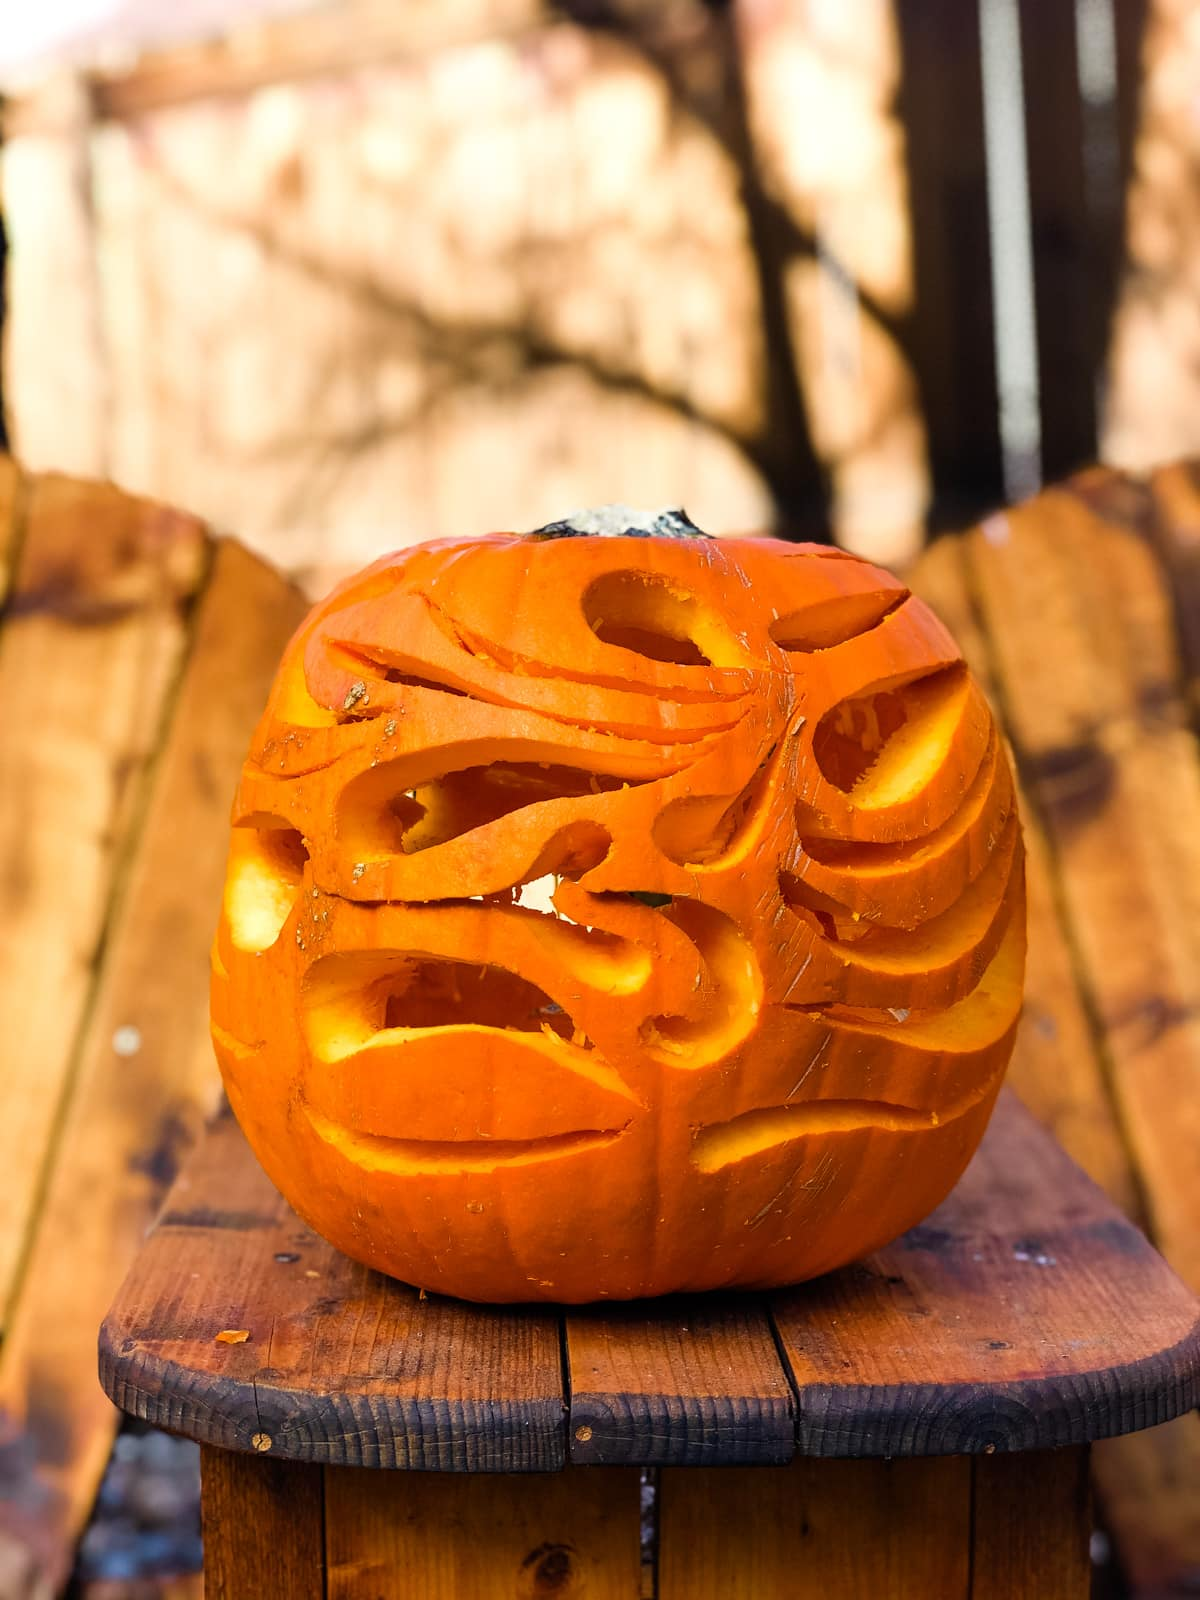 a large orange pumpkin with swirls carved into it